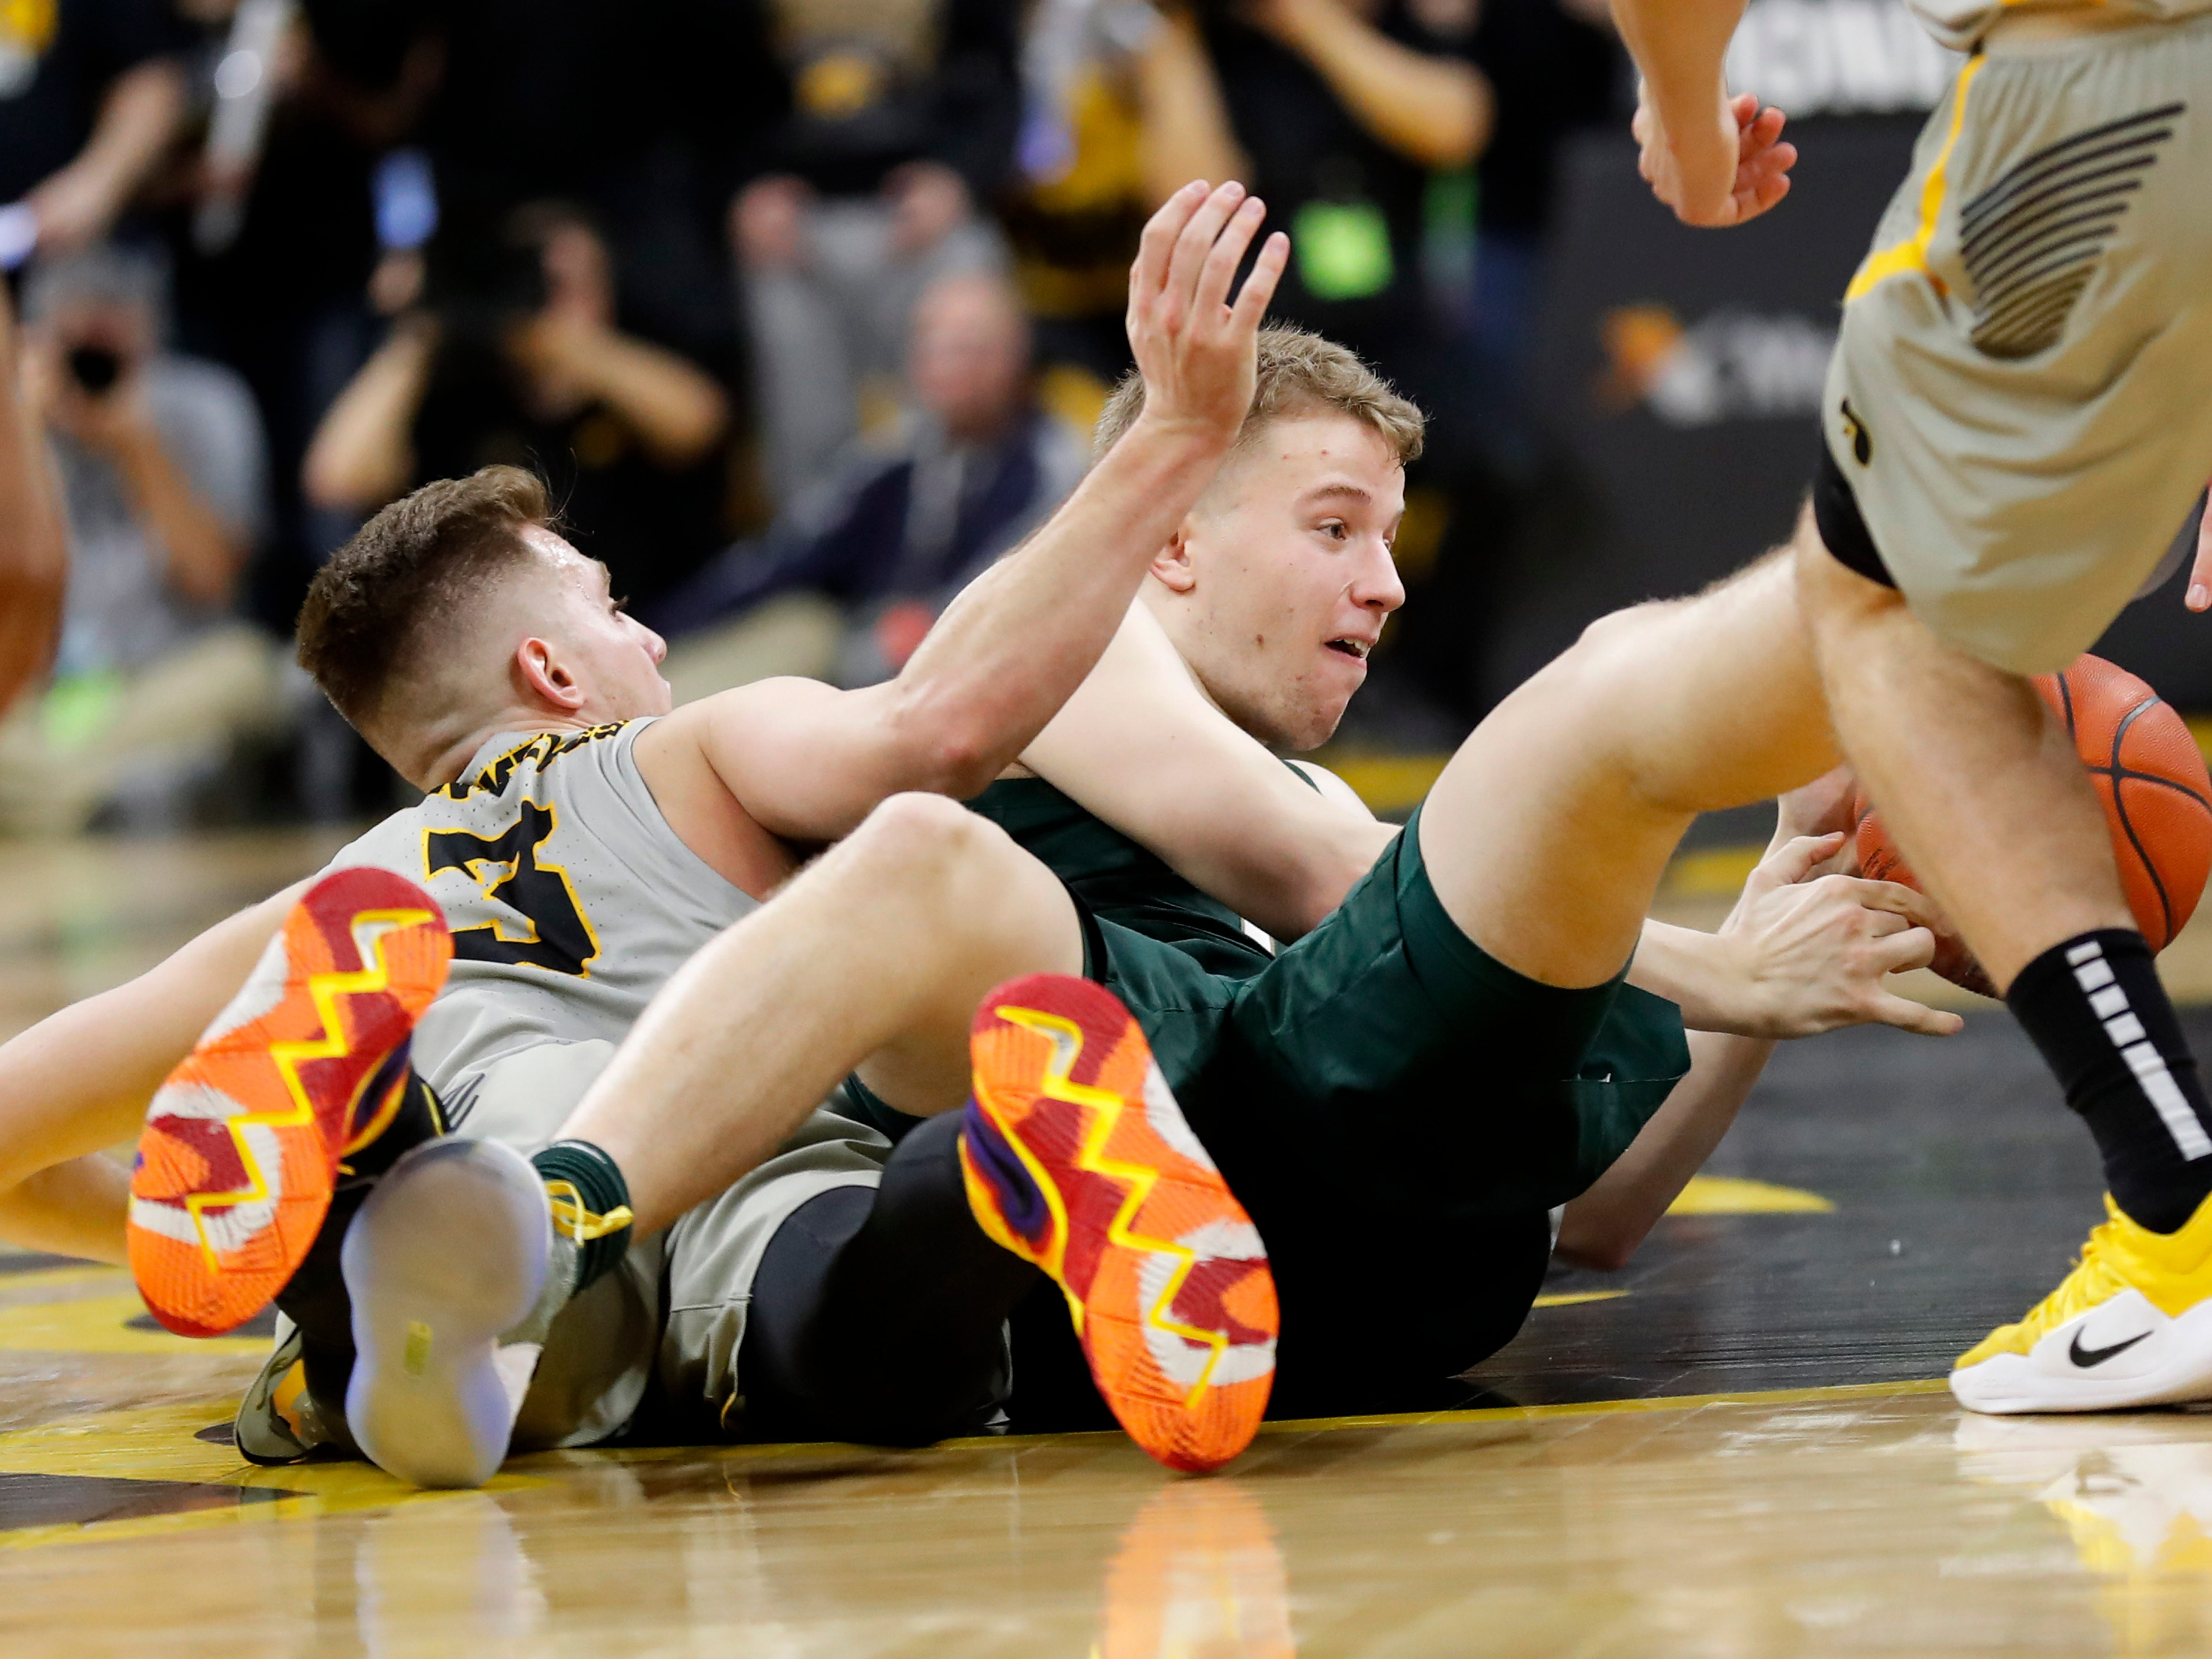 Michigan State forward Thomas Kithier fights for a loose ball with Iowa guard Jordan Bohannon, left, during the first half of an NCAA college basketball game Thursday, Jan. 24, 2019, in Iowa City, Iowa.